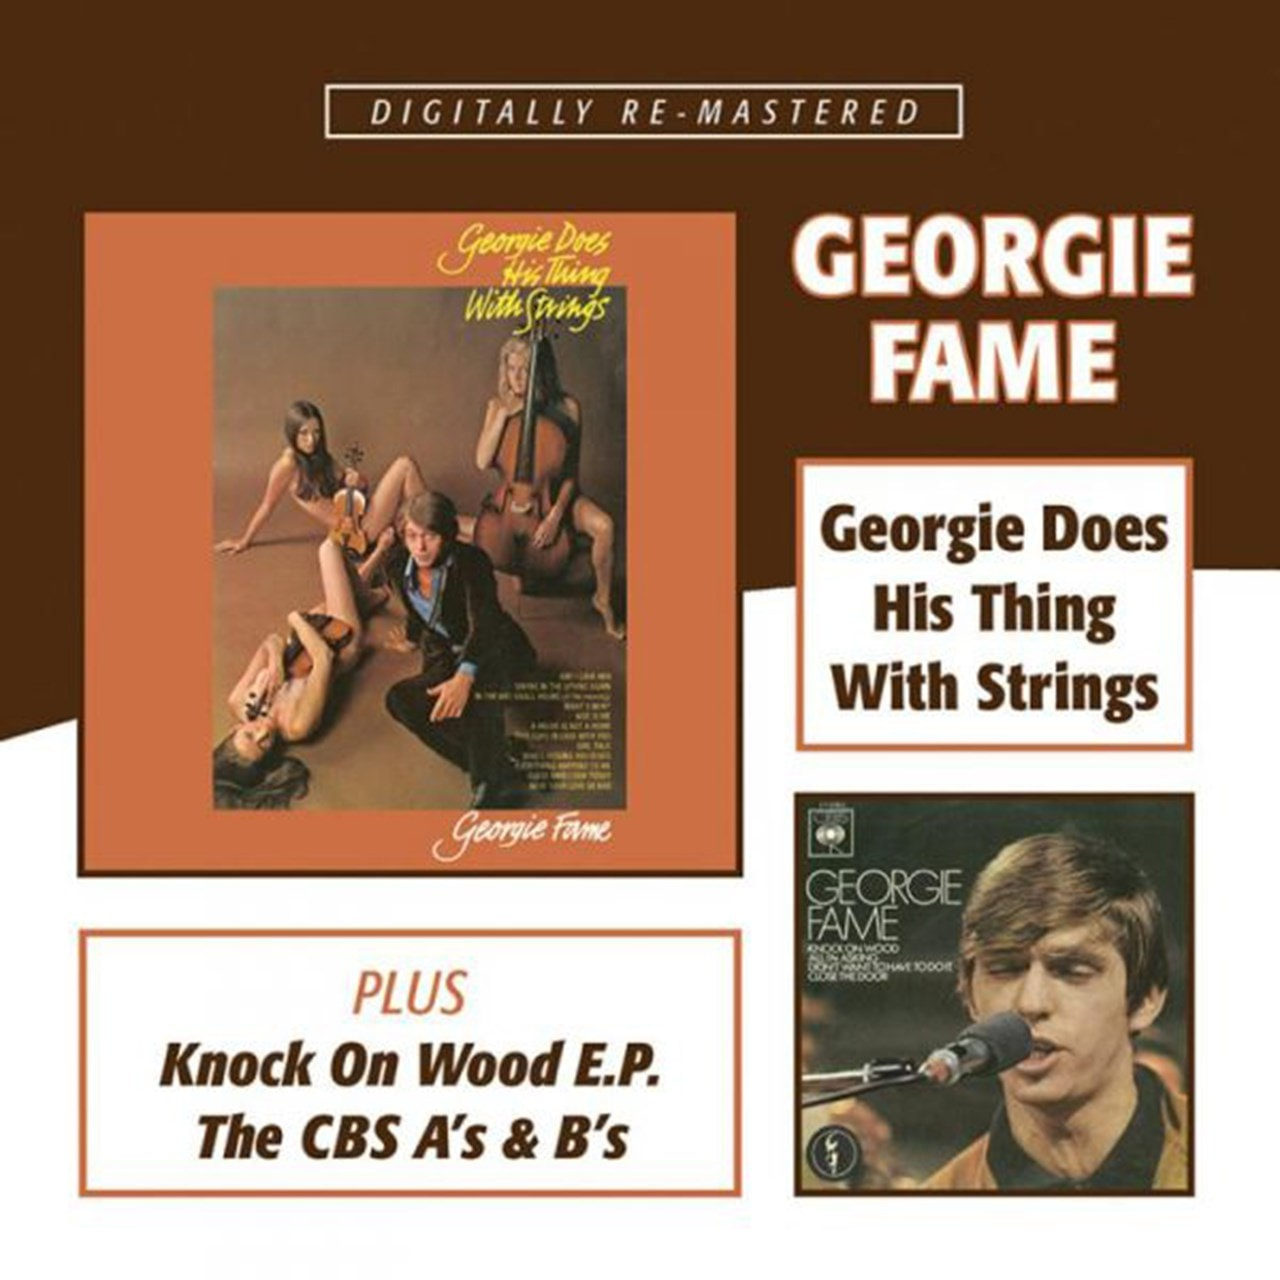 Georgie Does His Thing With Strings/Knock On Wood/The CBS As & Bs - 1